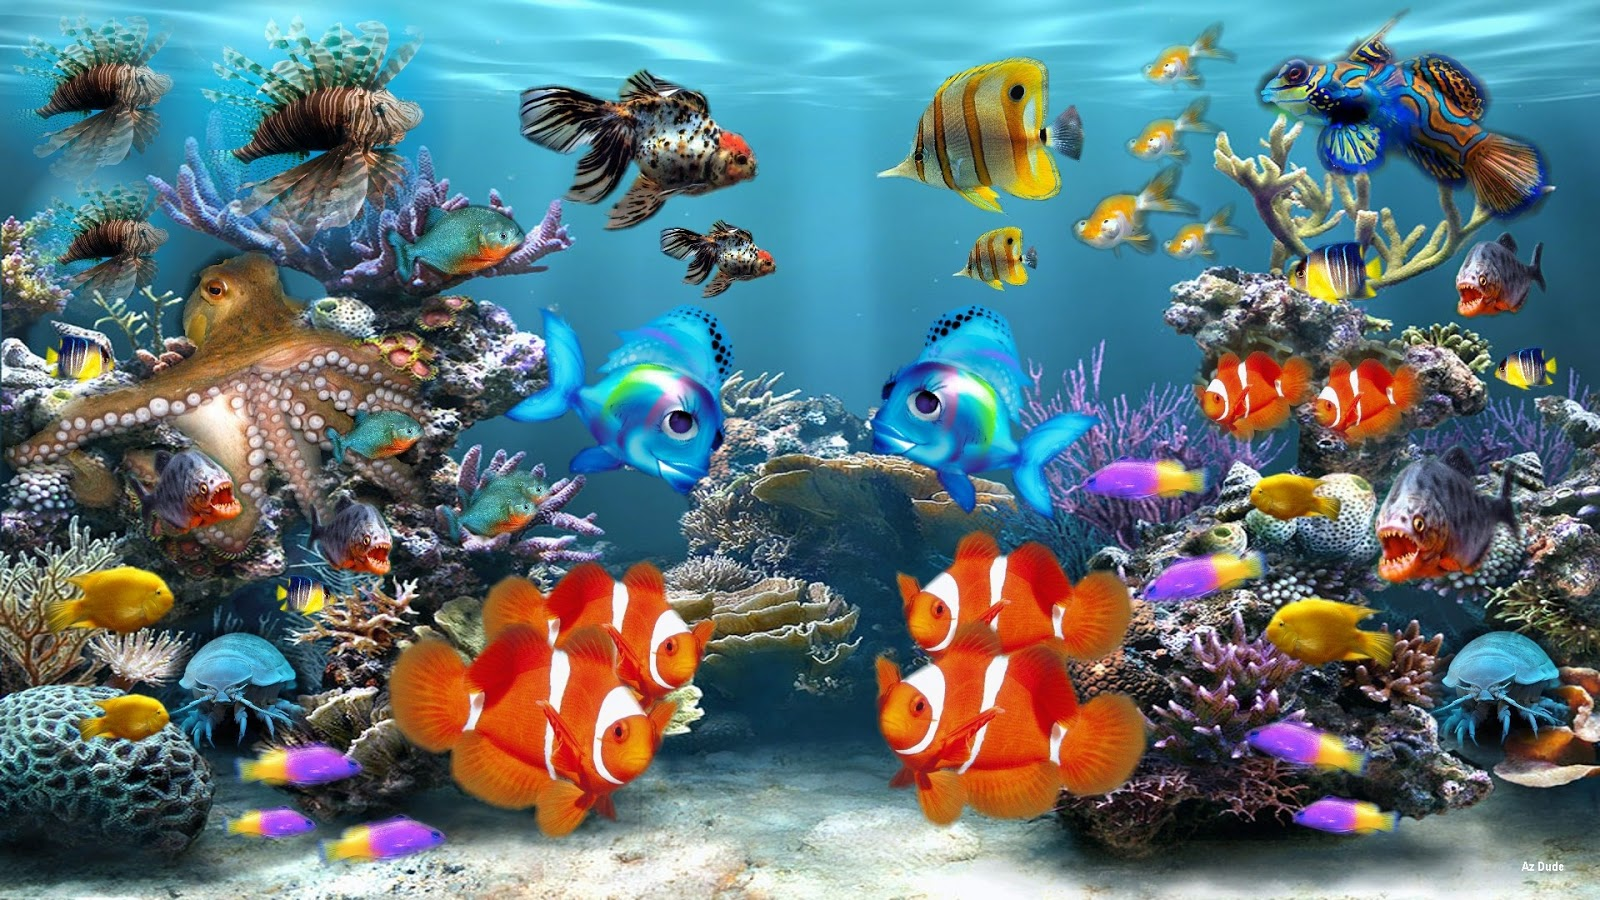 aquarium hd wallpaper aquarium wallpaper osabelhudosec